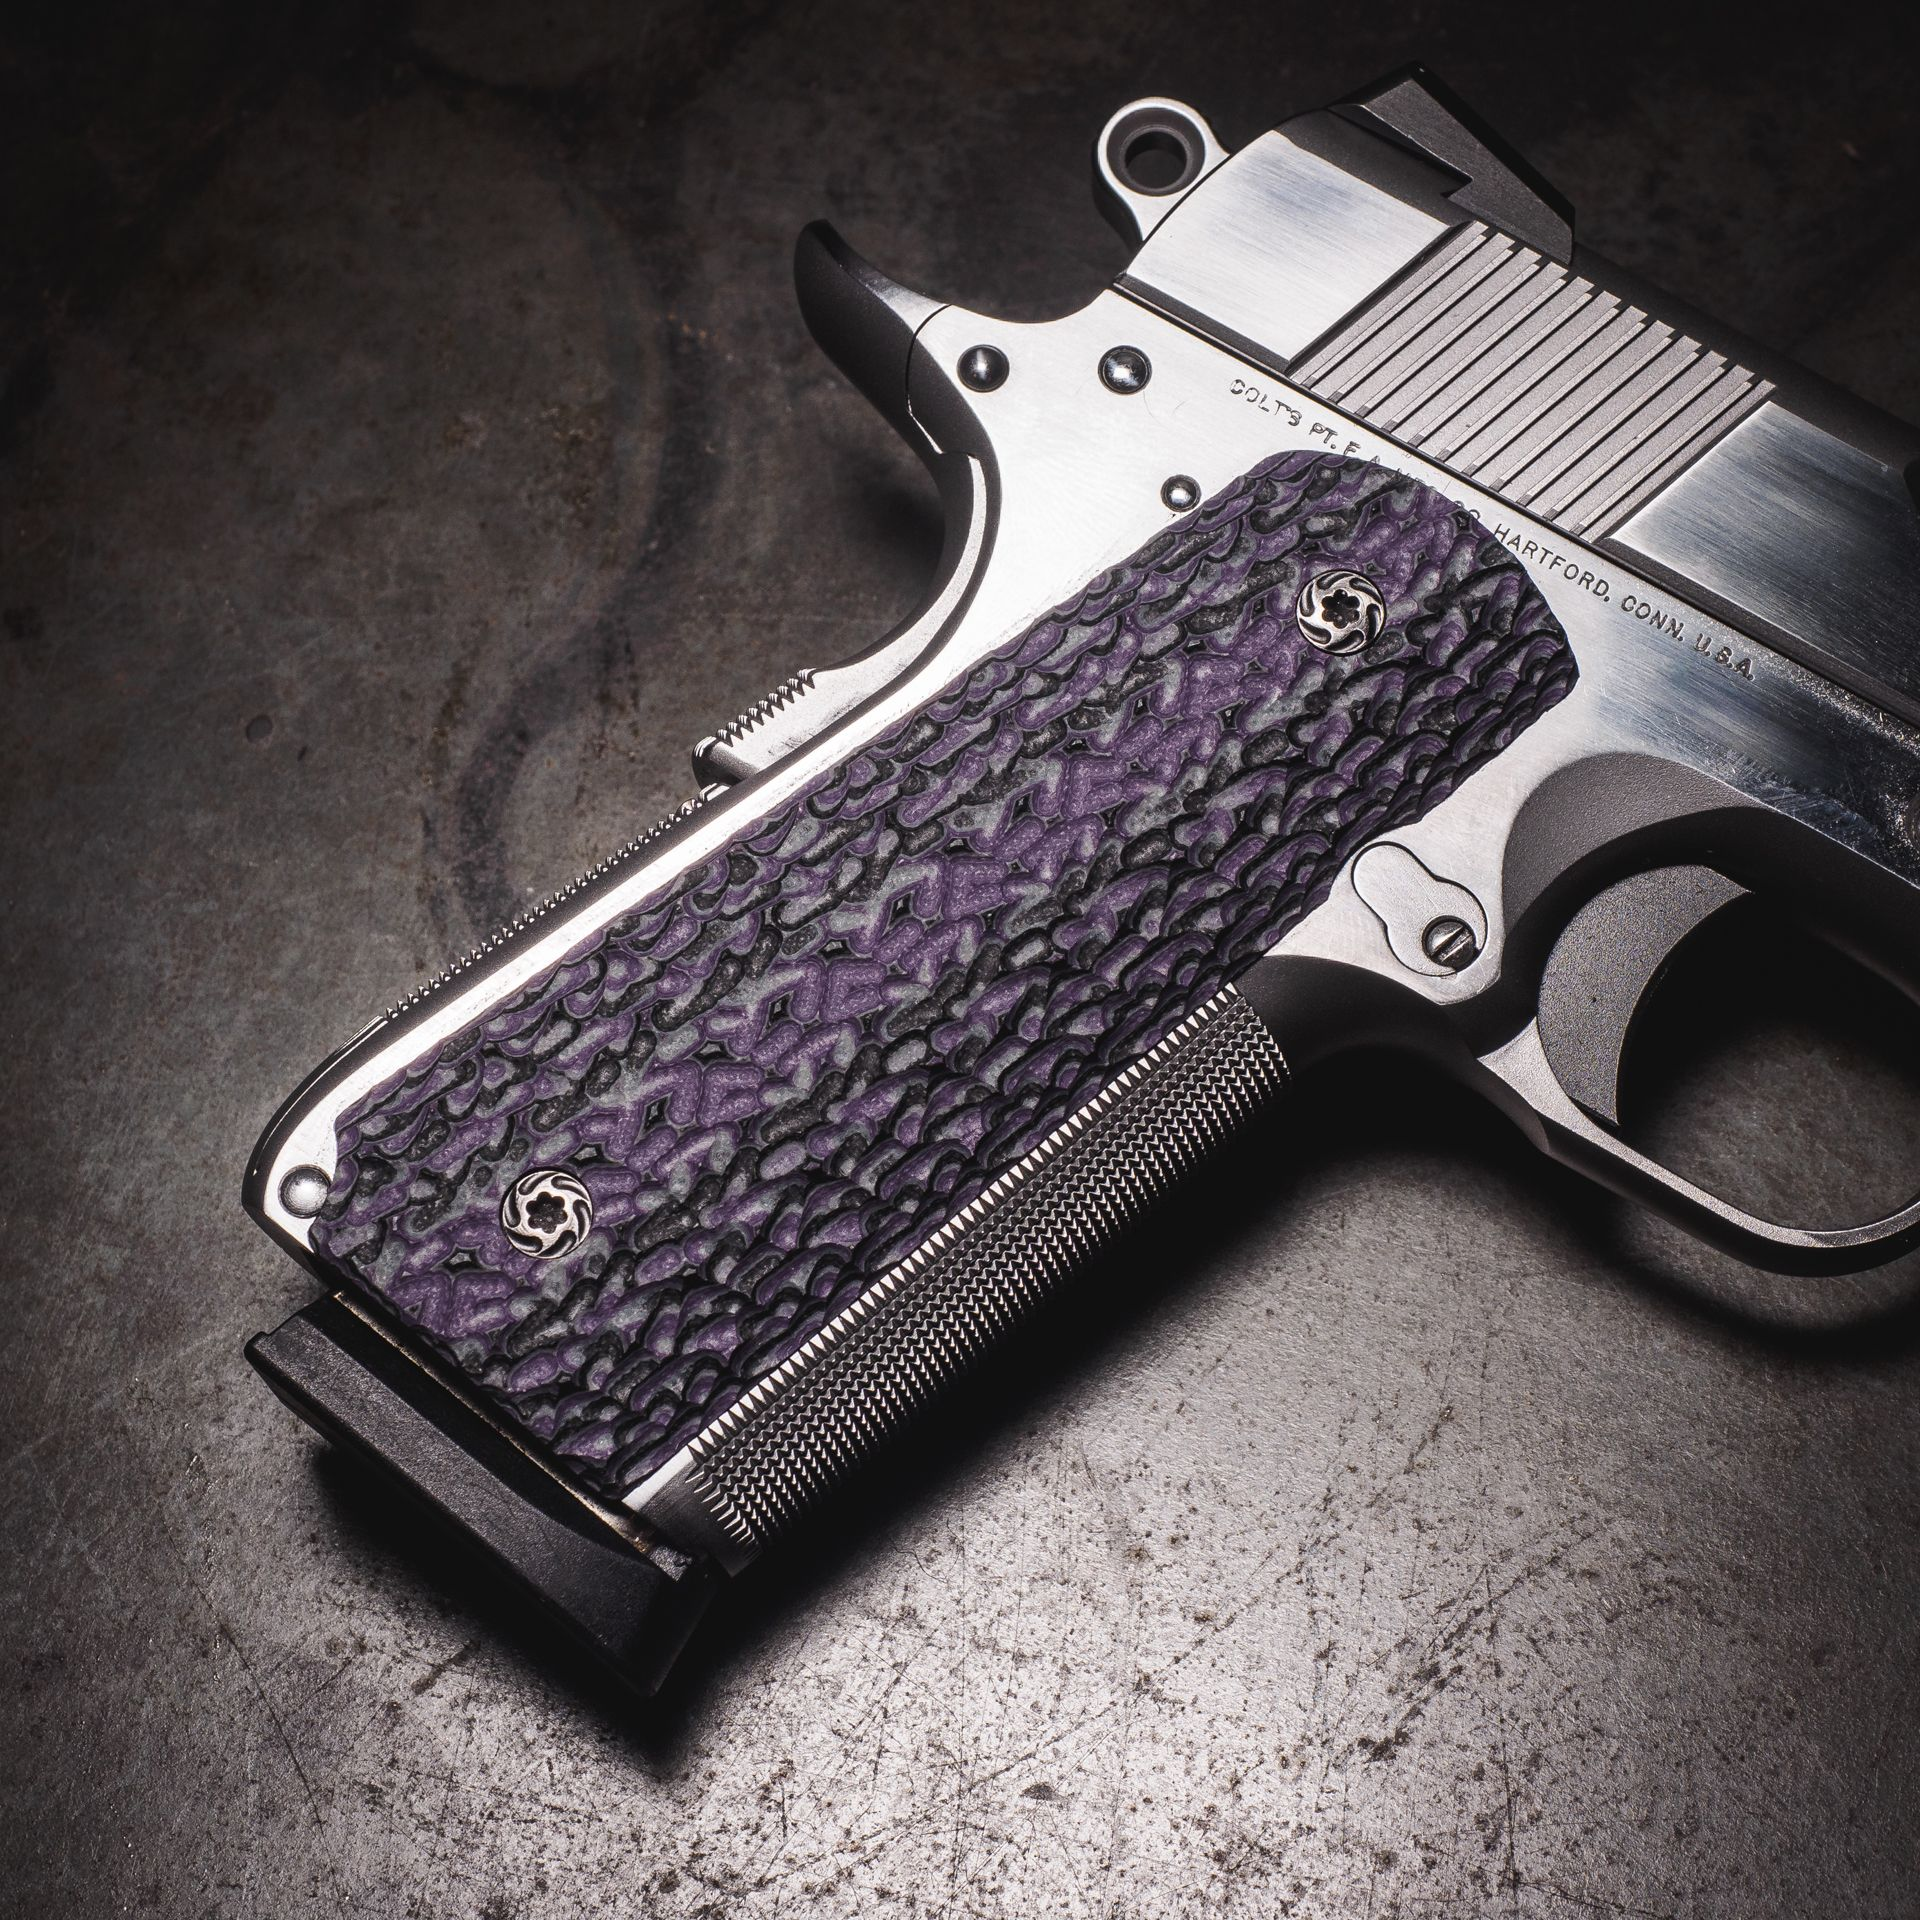 VZ G10 grips now in purple stipple  | 1911 Grips | 1911 grips, 1911